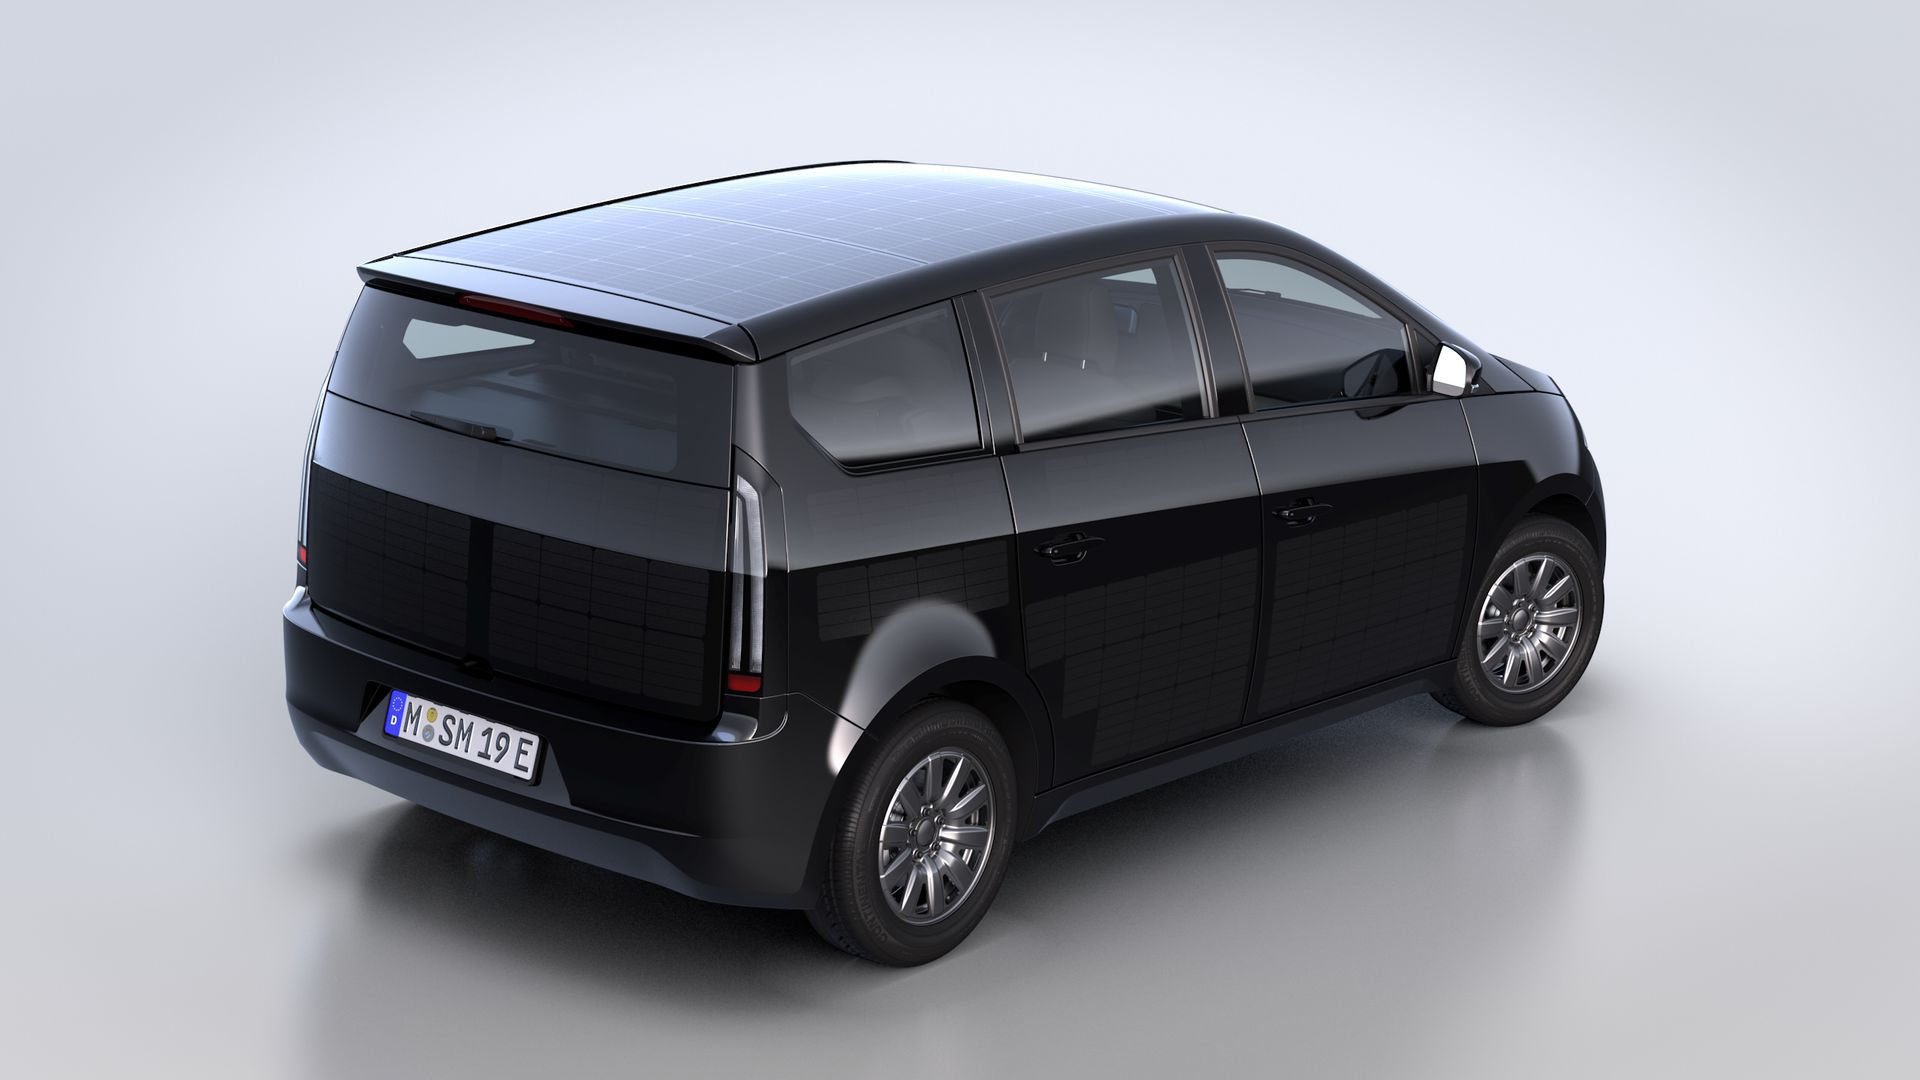 German startup teases solar-powered electric vehicle - Axios